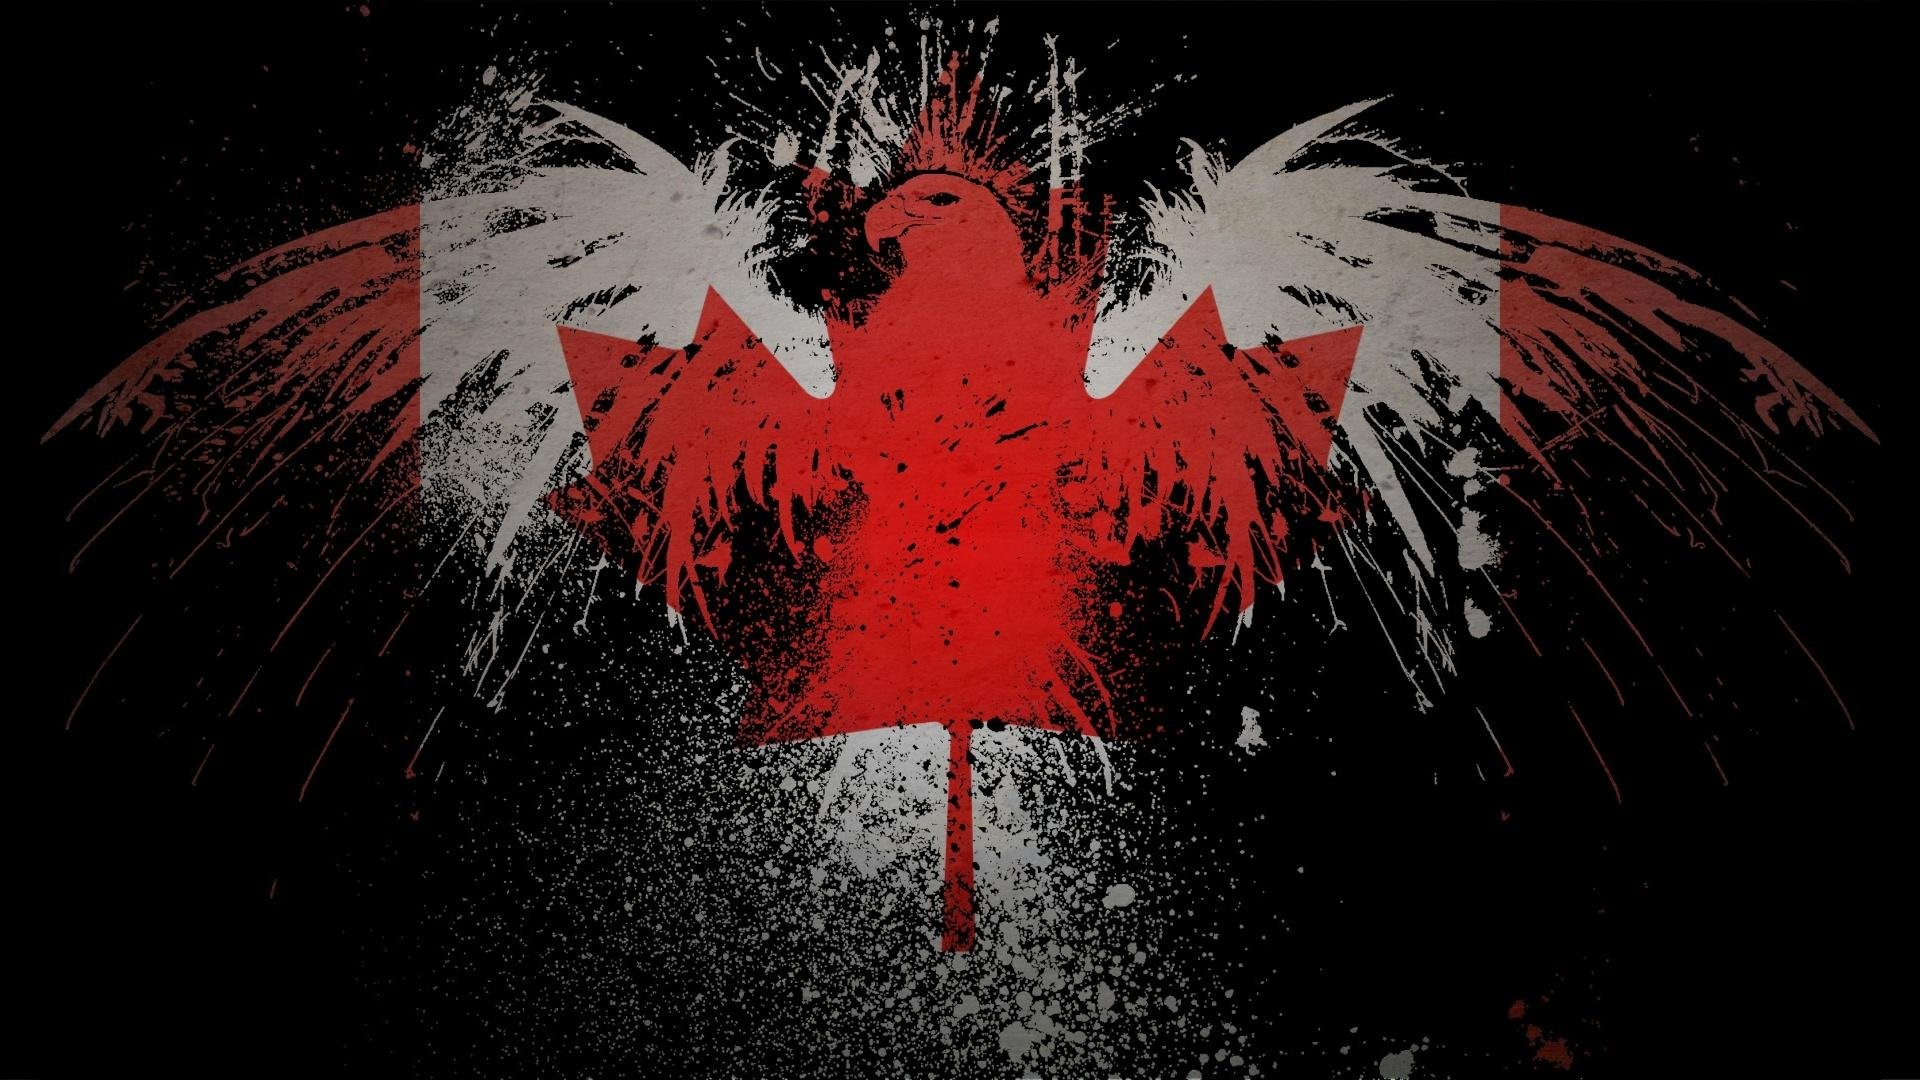 1920x1080 HD Wallpaper - Canada Flag by bladerahul on DeviantArt